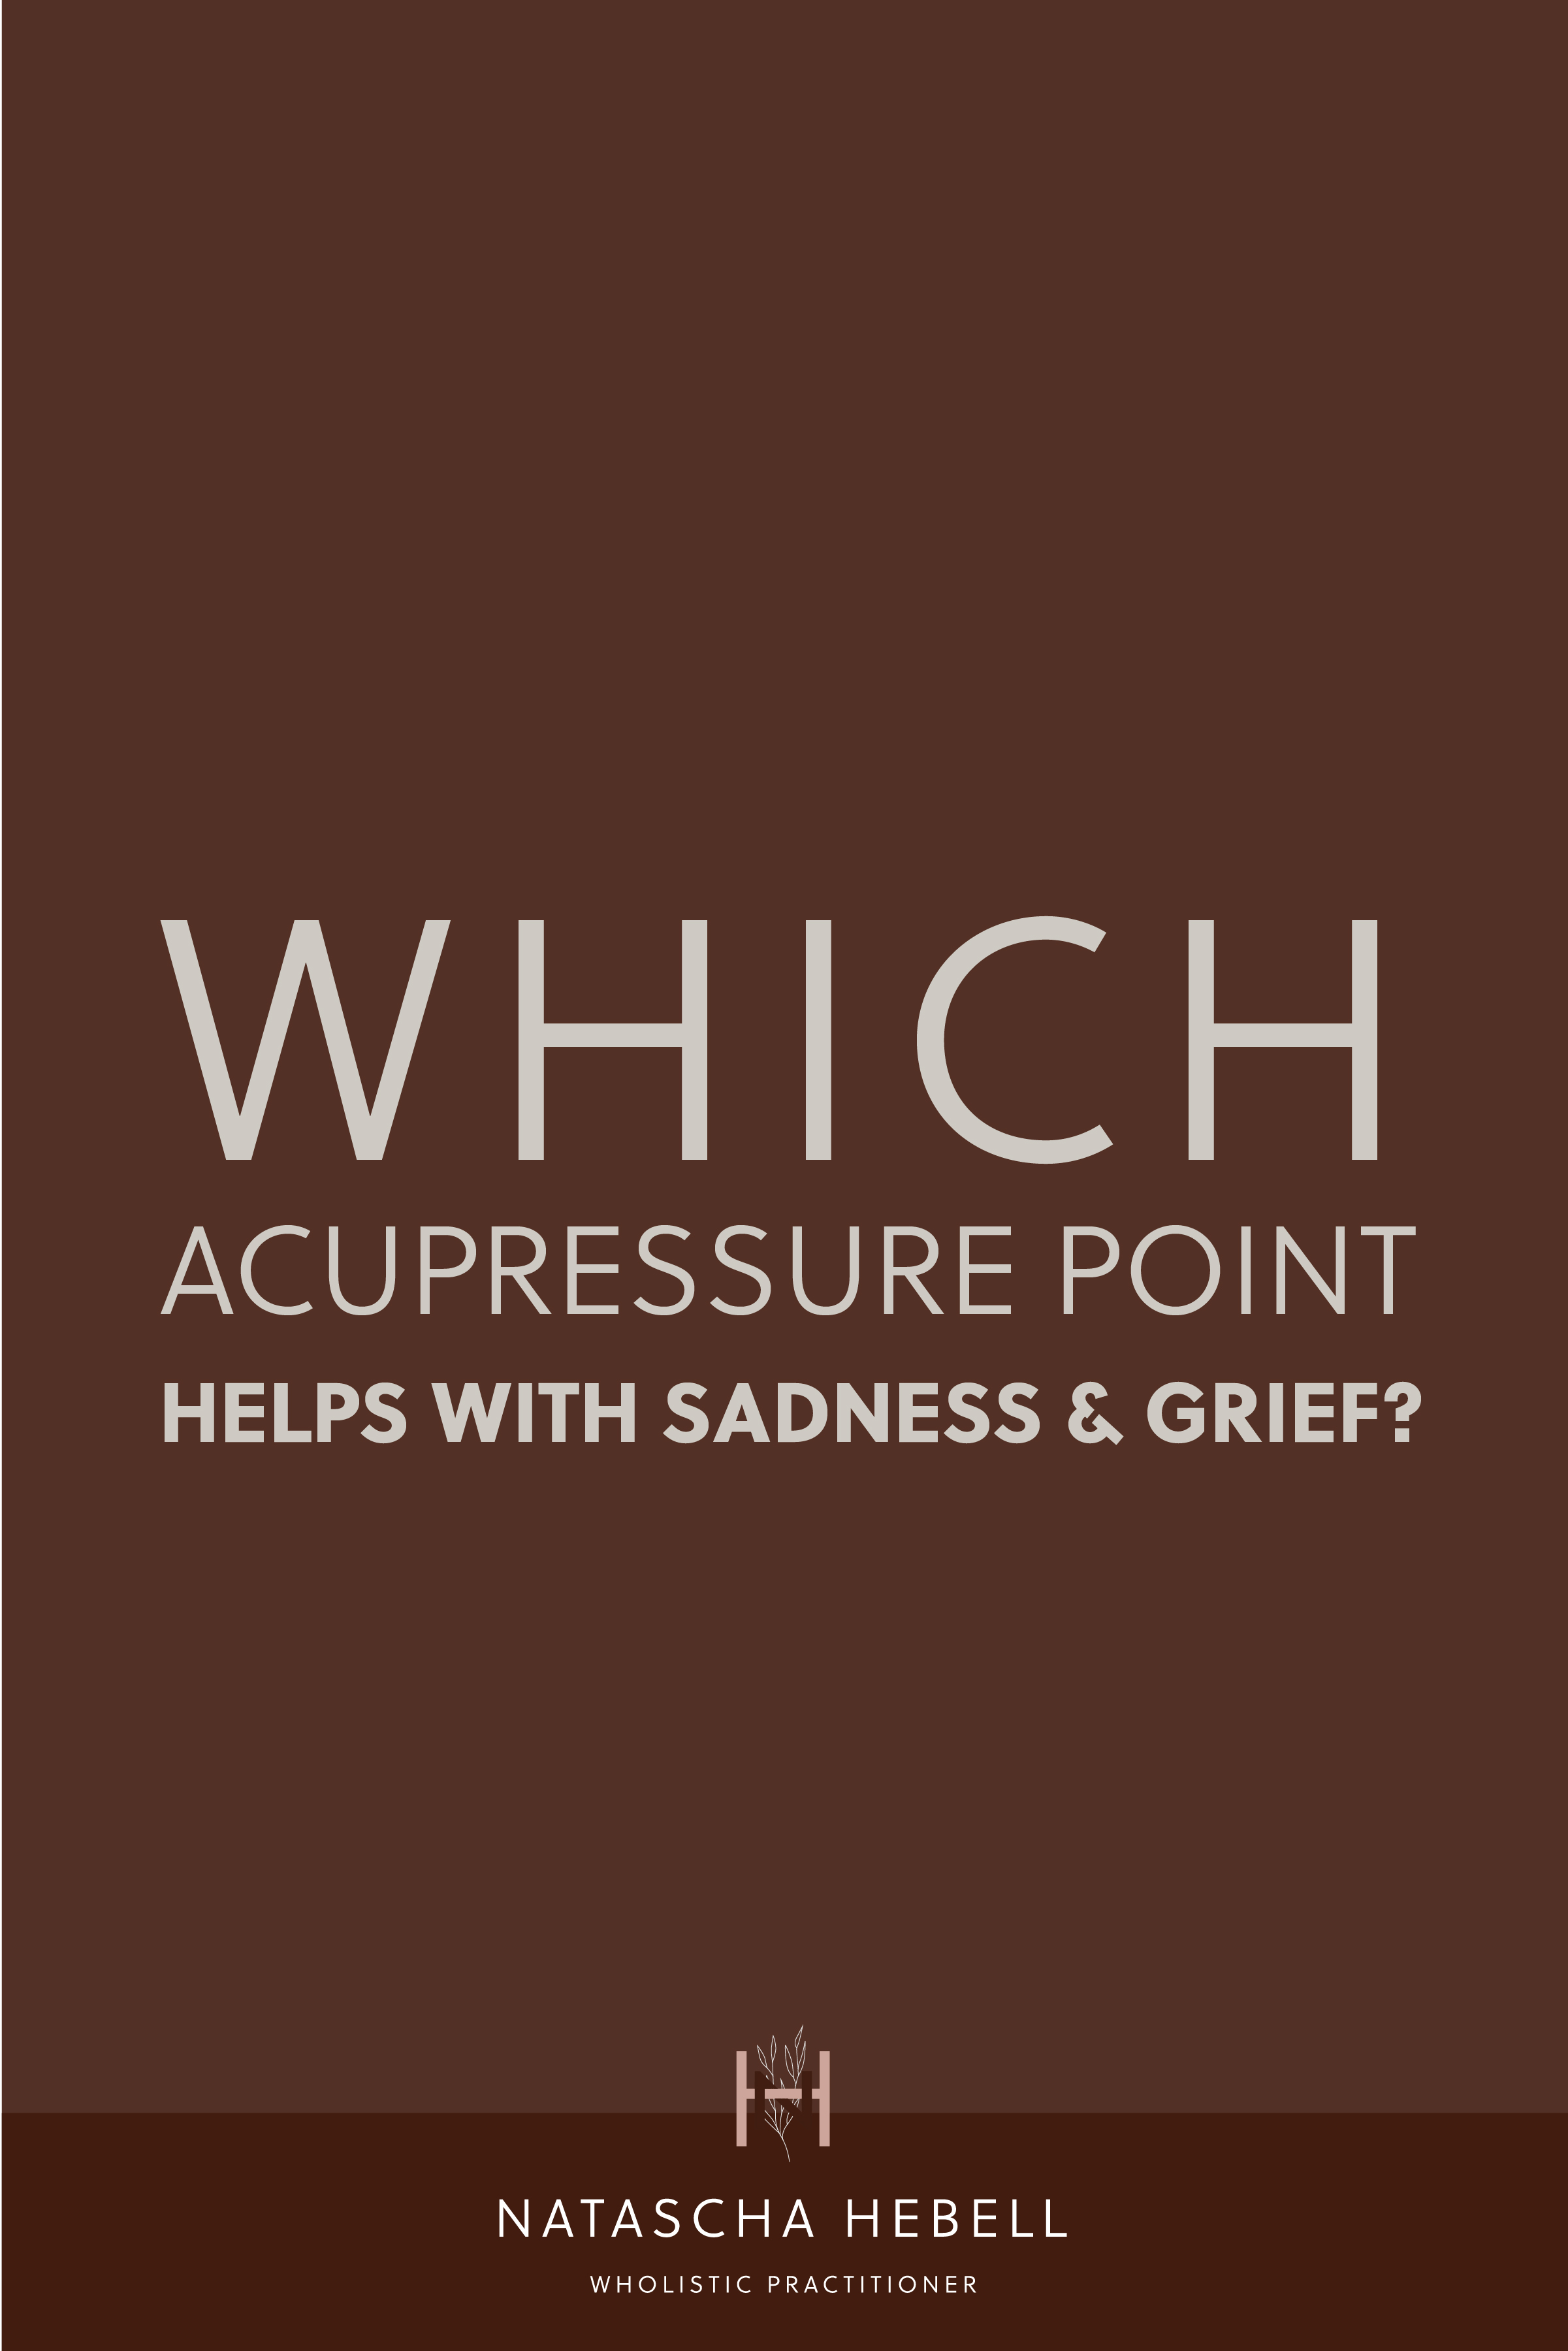 Which acupressire point helps with sadness and grief? | Natascha Hebell, Wholistic Practitioner